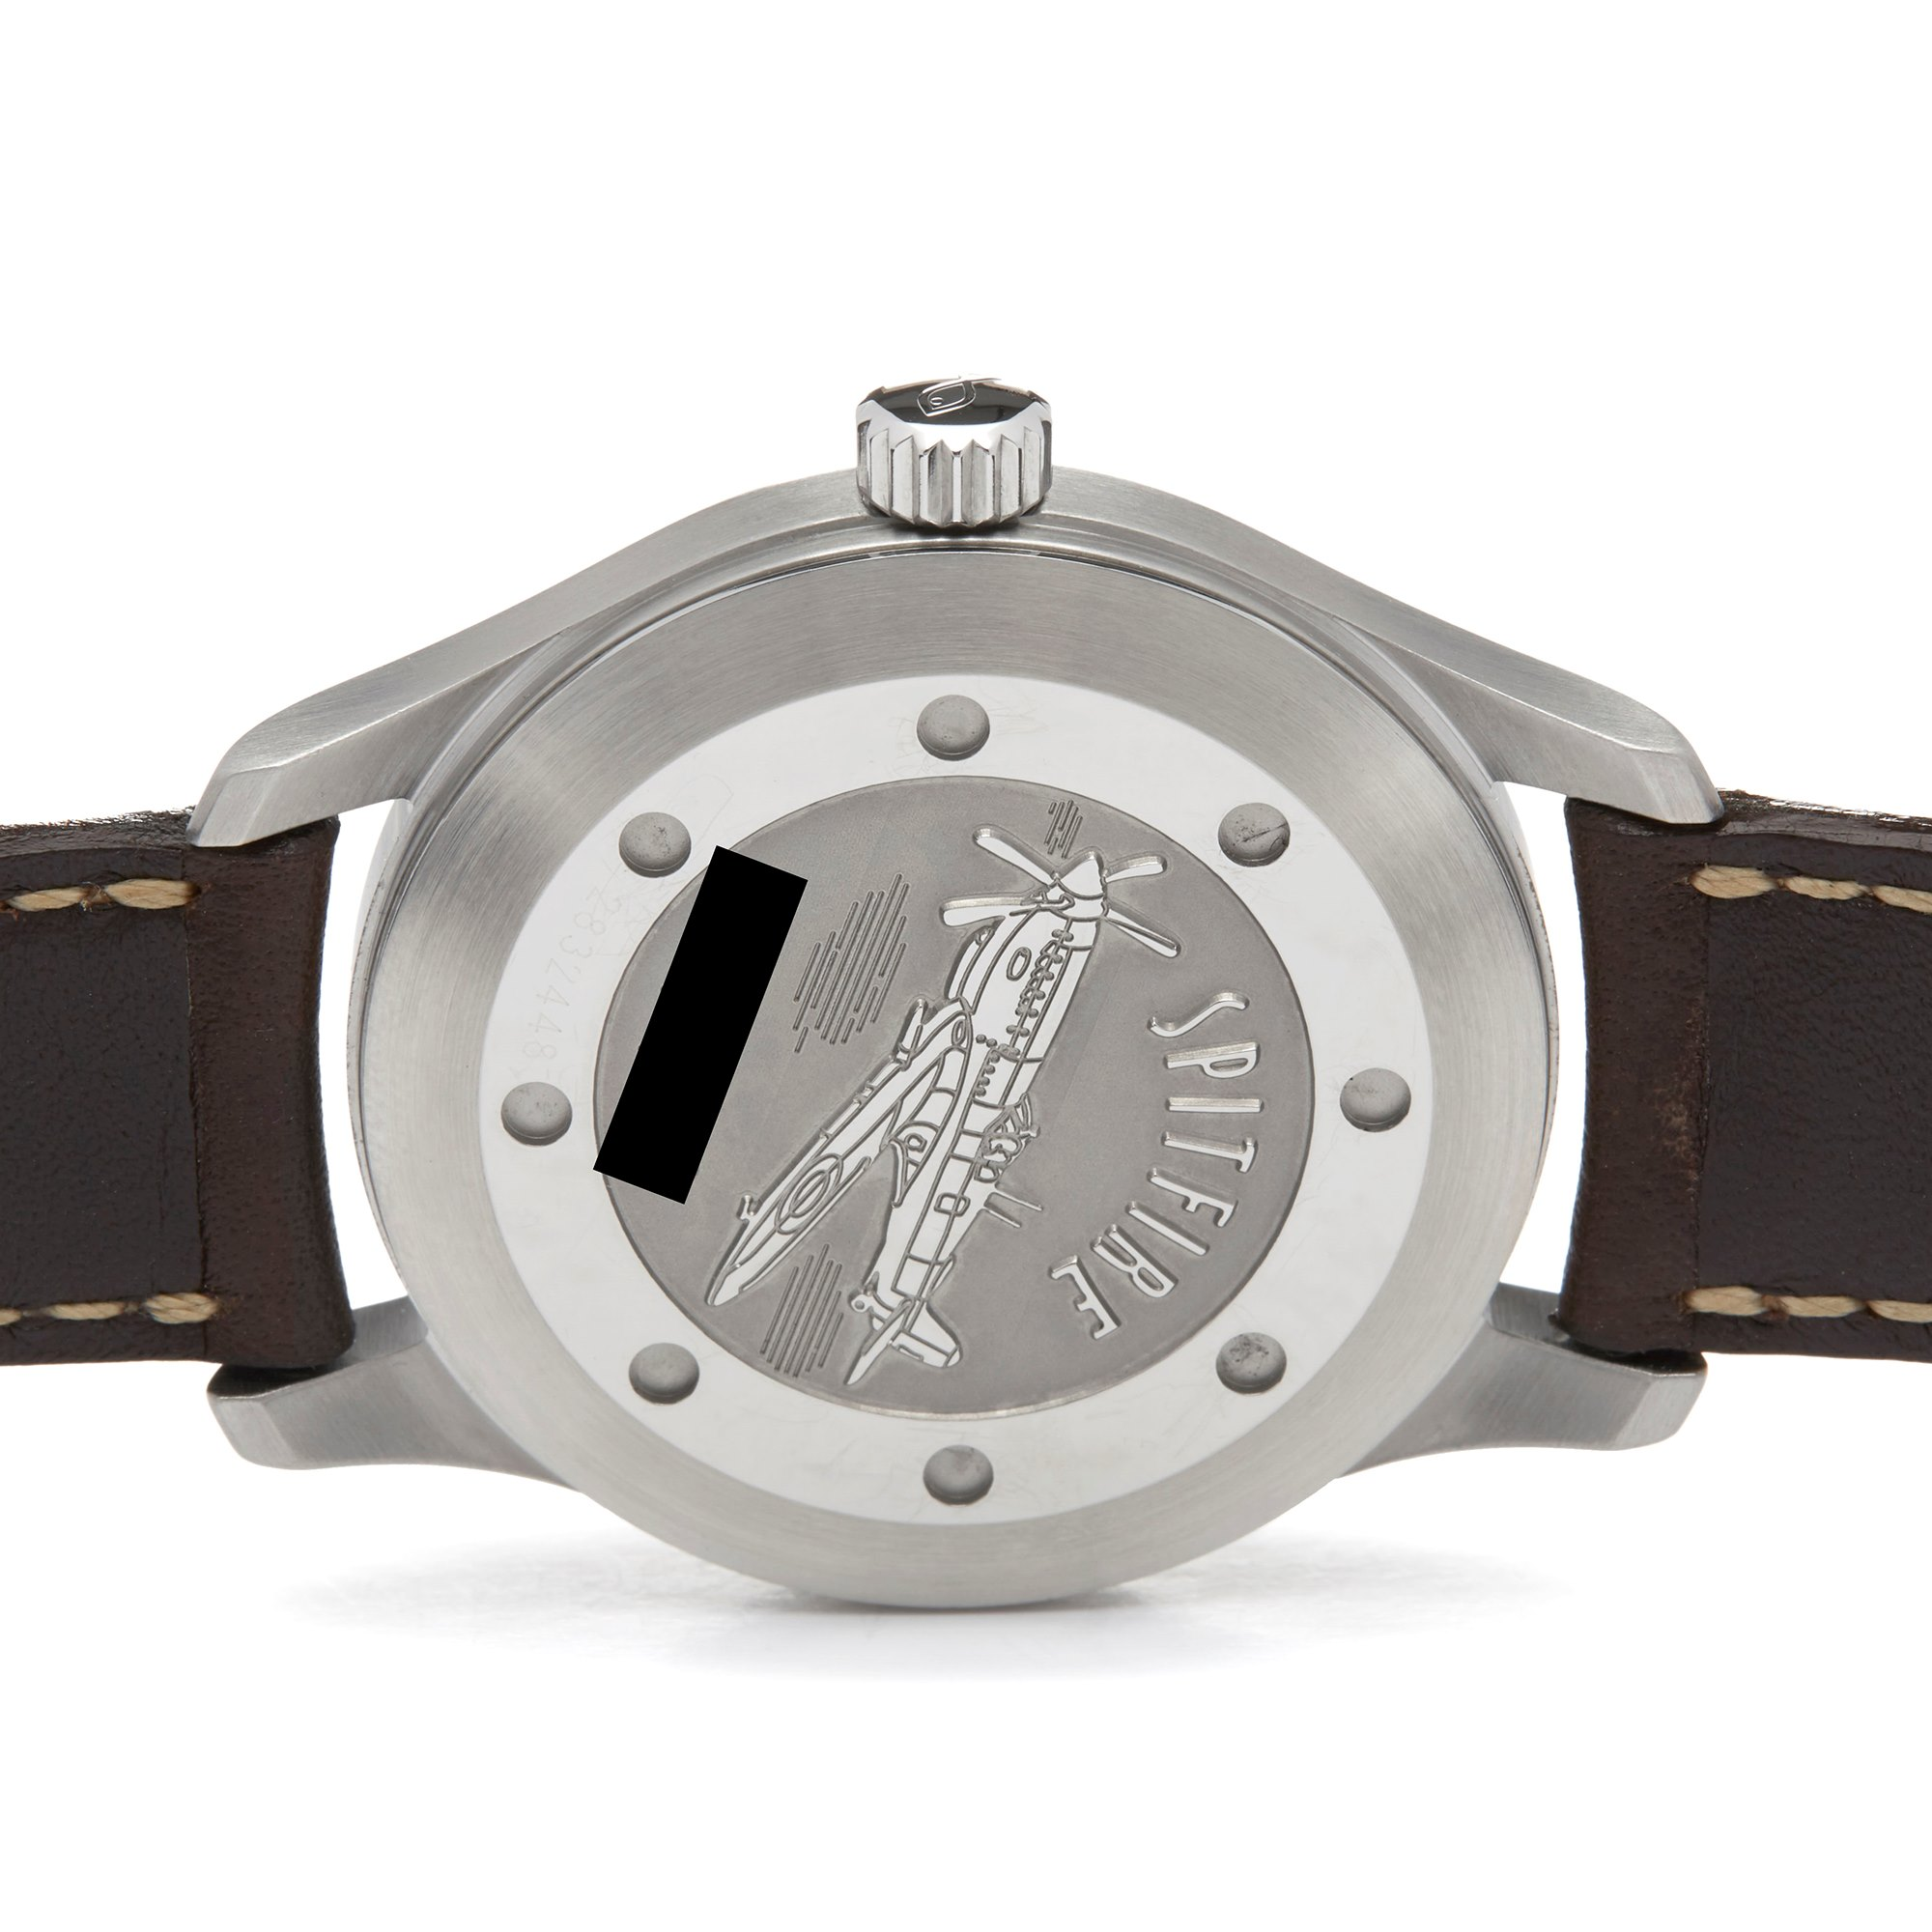 IWC Pilot's Spitfire MK XV Limited Edition of 1000 pieces Stainless Steel - IW325305 Stainless Steel IW325305